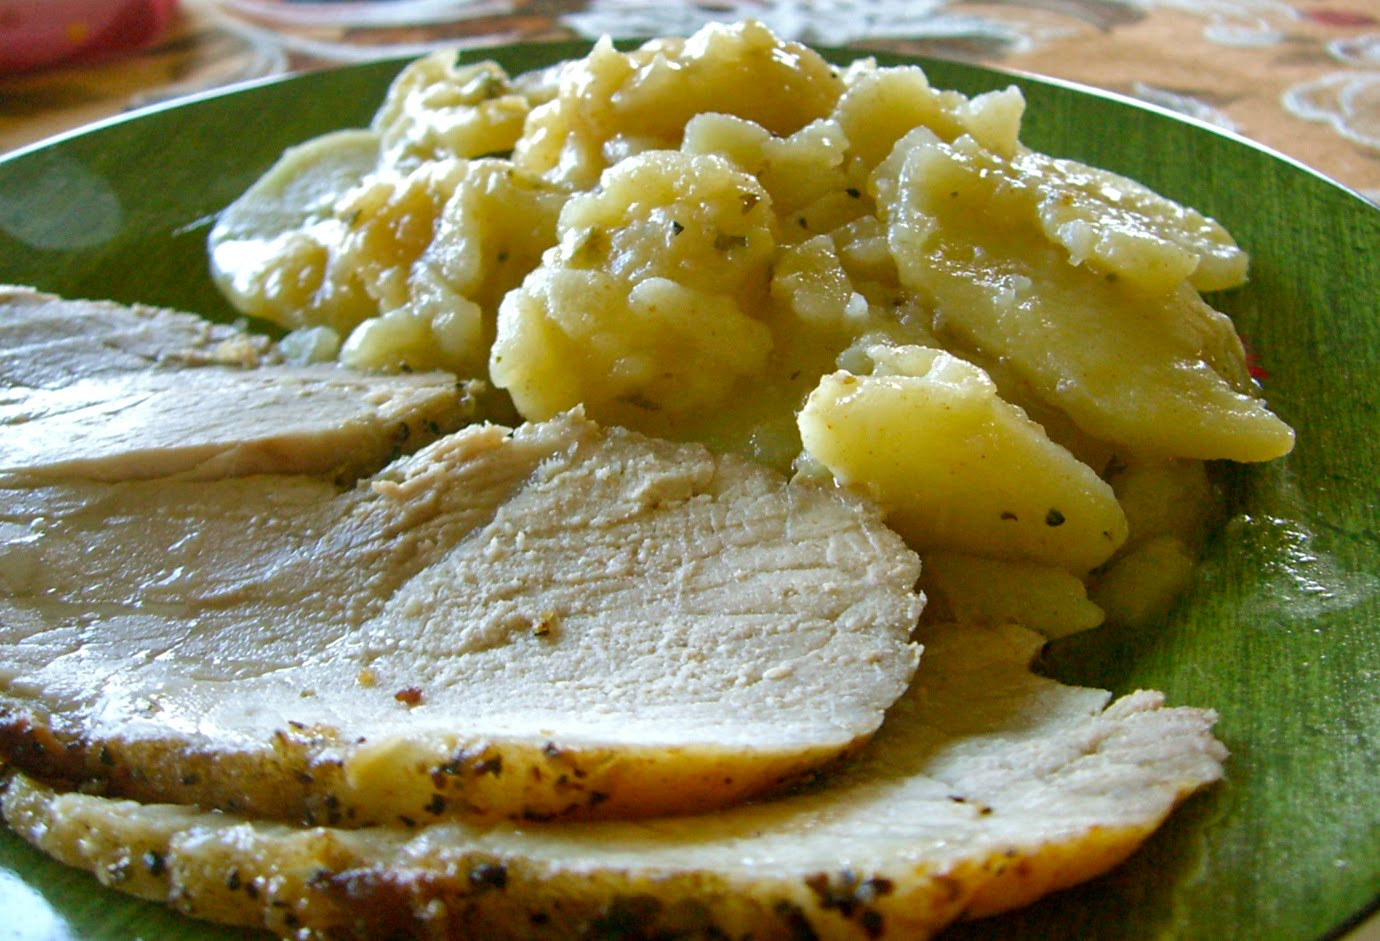 new potatoes roast pork loin with new potatoes herb and spice crusted ...